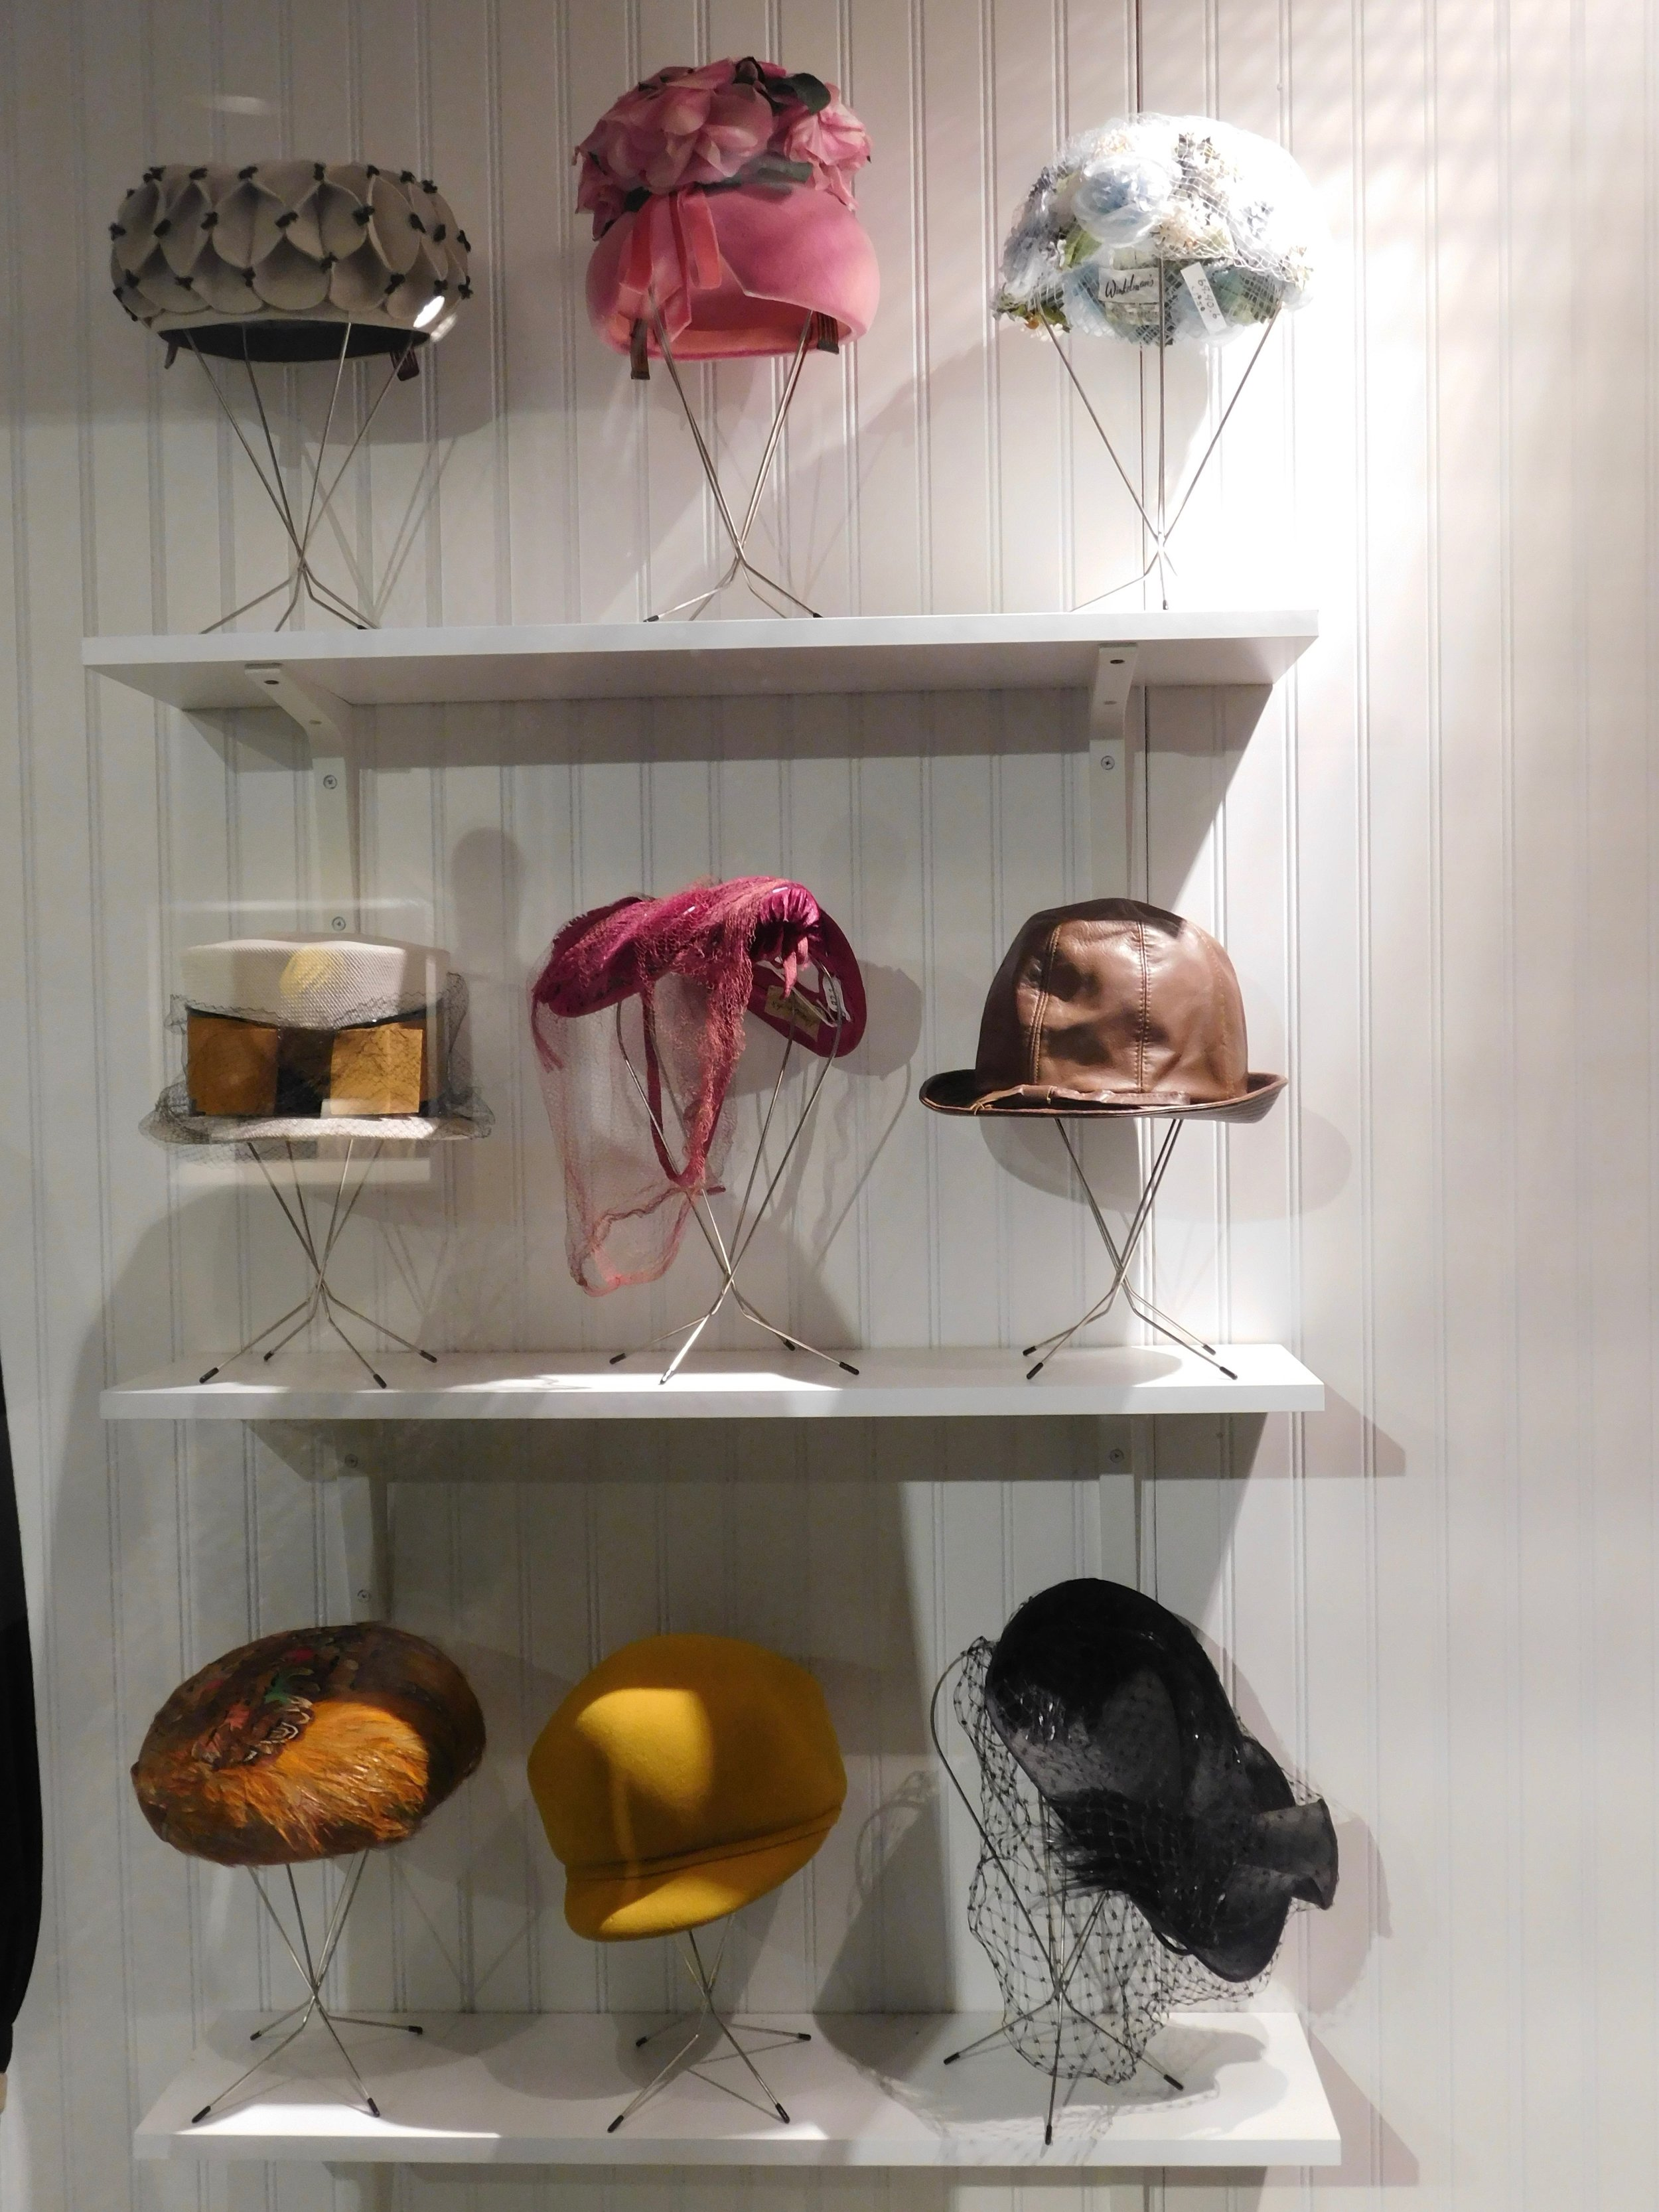 Hats and fascinators.